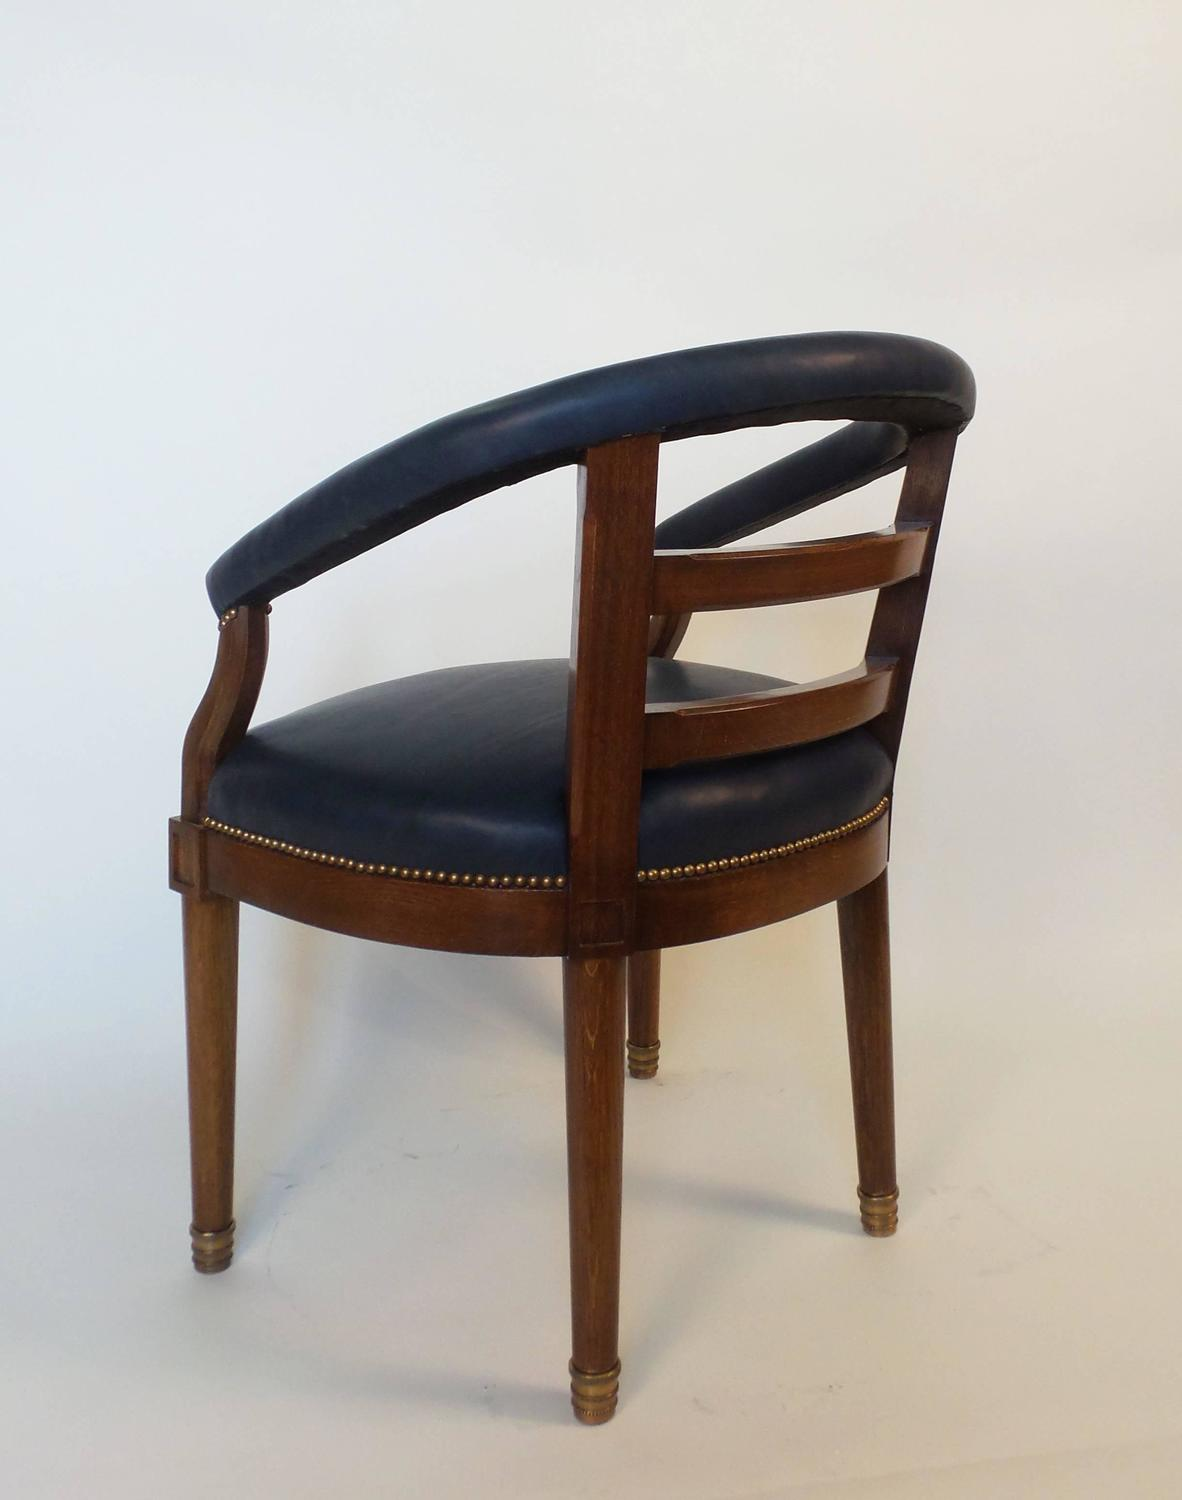 chair design back angle living room arm covers american barrel armchair for sale at 1stdibs